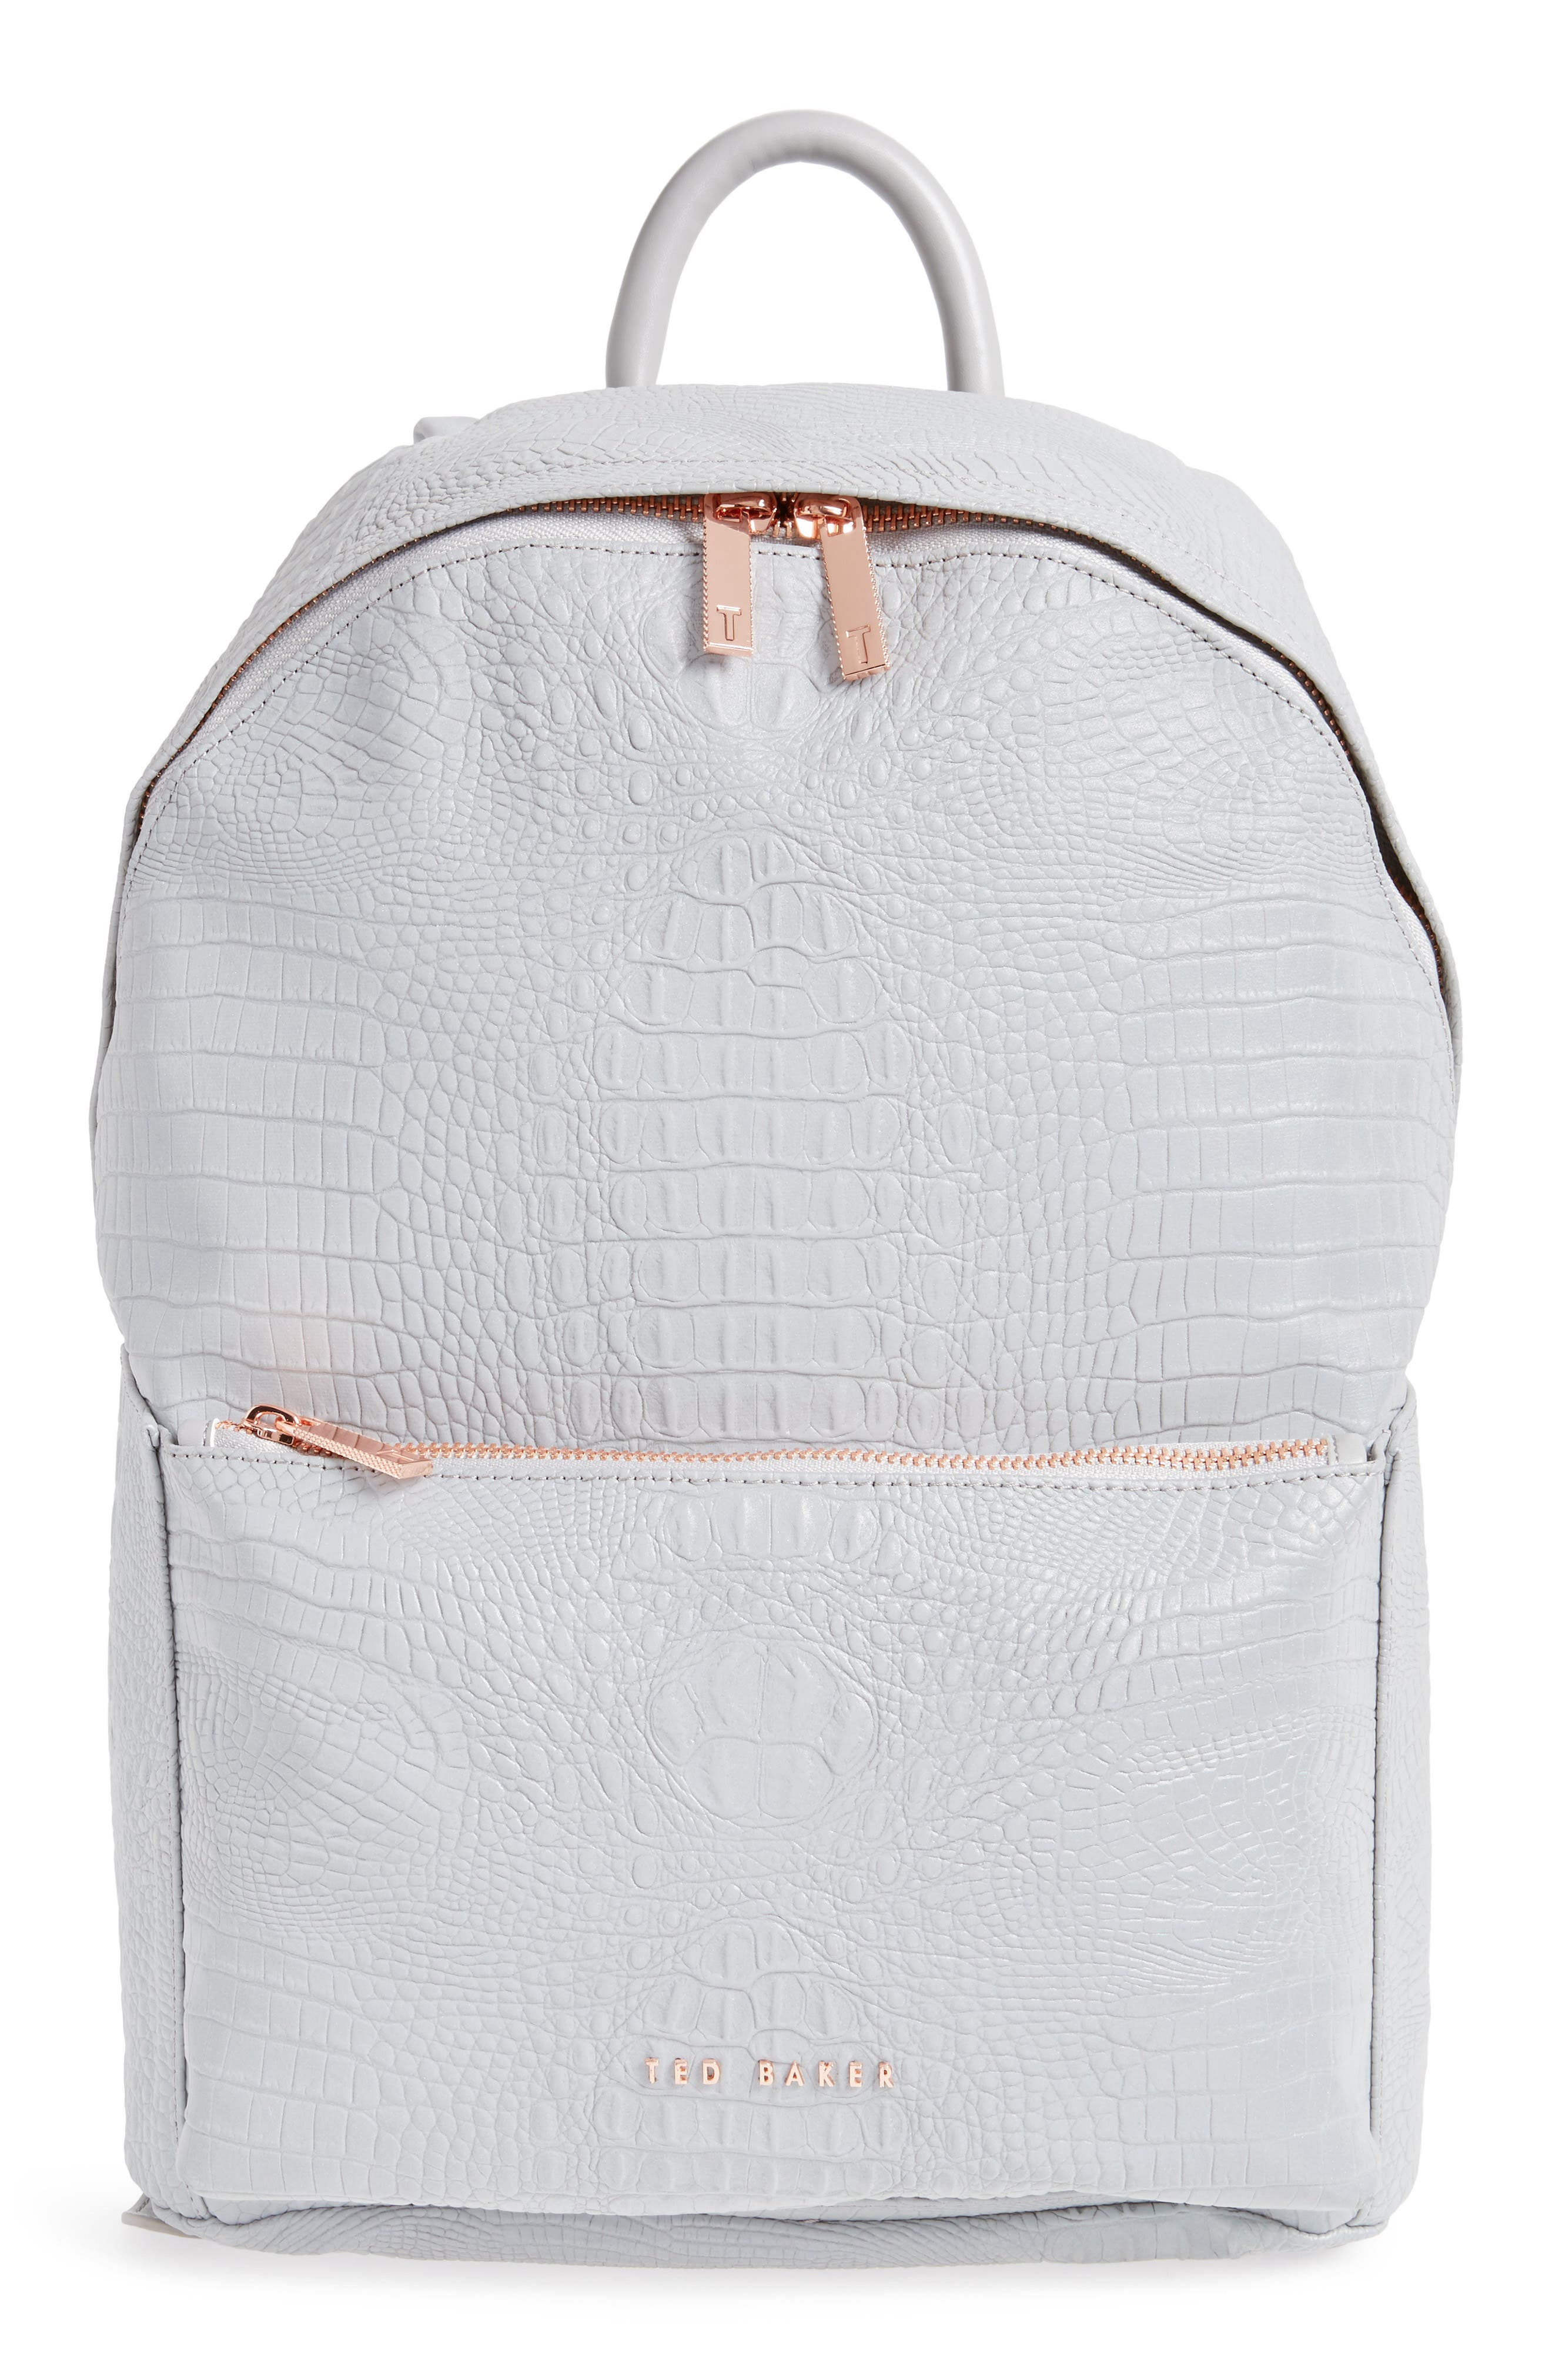 Rahri Reflective Croc Embossed Faux Leather Backpack,                         Main,                         color, 050